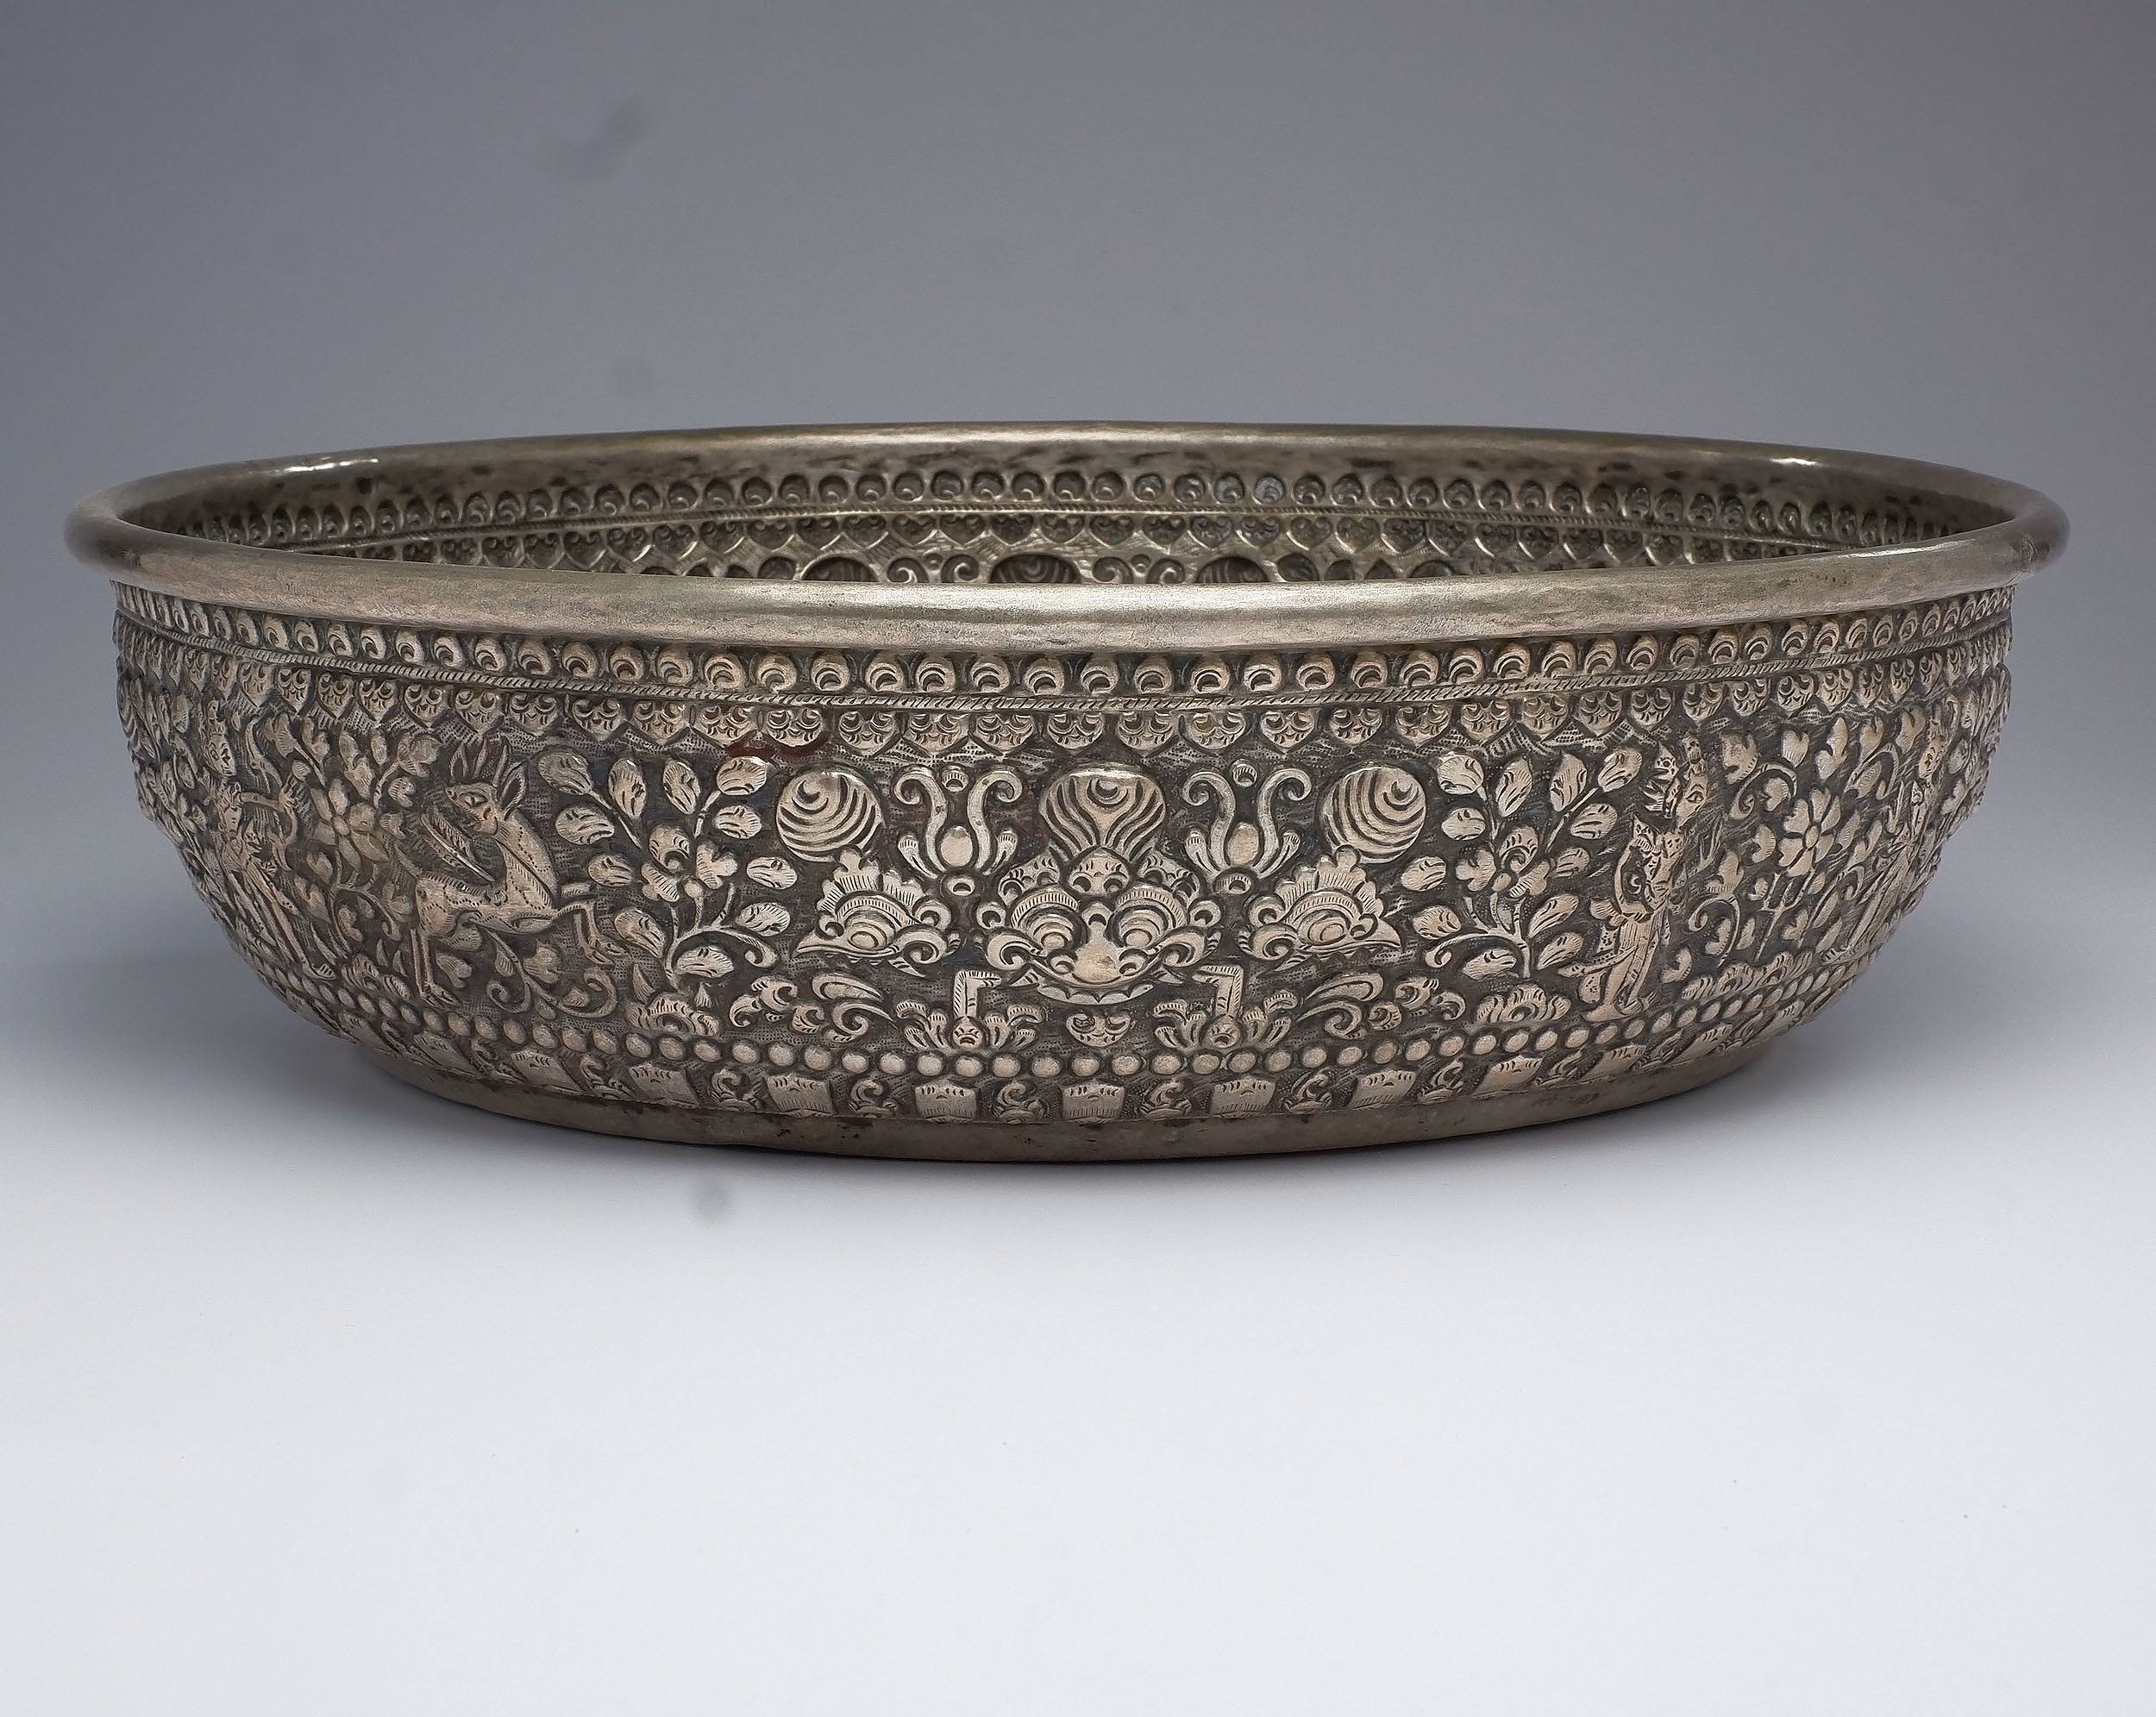 'Large Early Balinese Silvered Brass Offering Bowl Heavily Repousse Decorated with Animist Icons'